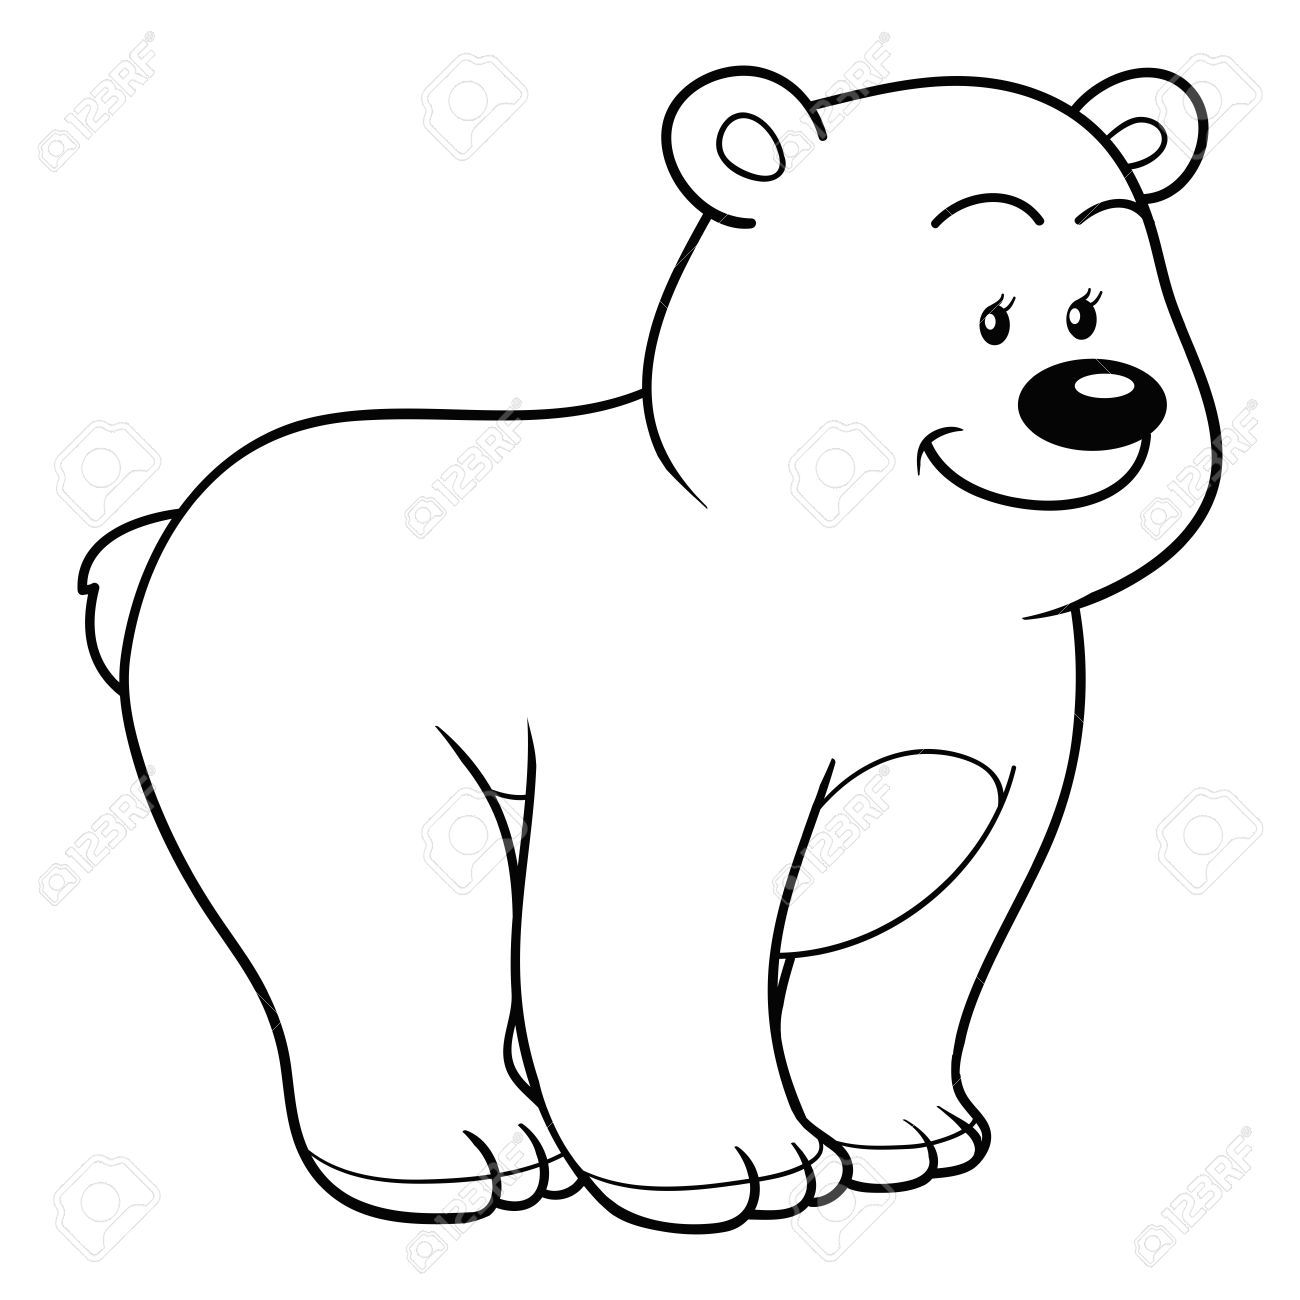 oso coloring pages fabulous click the anteater coloring with oso